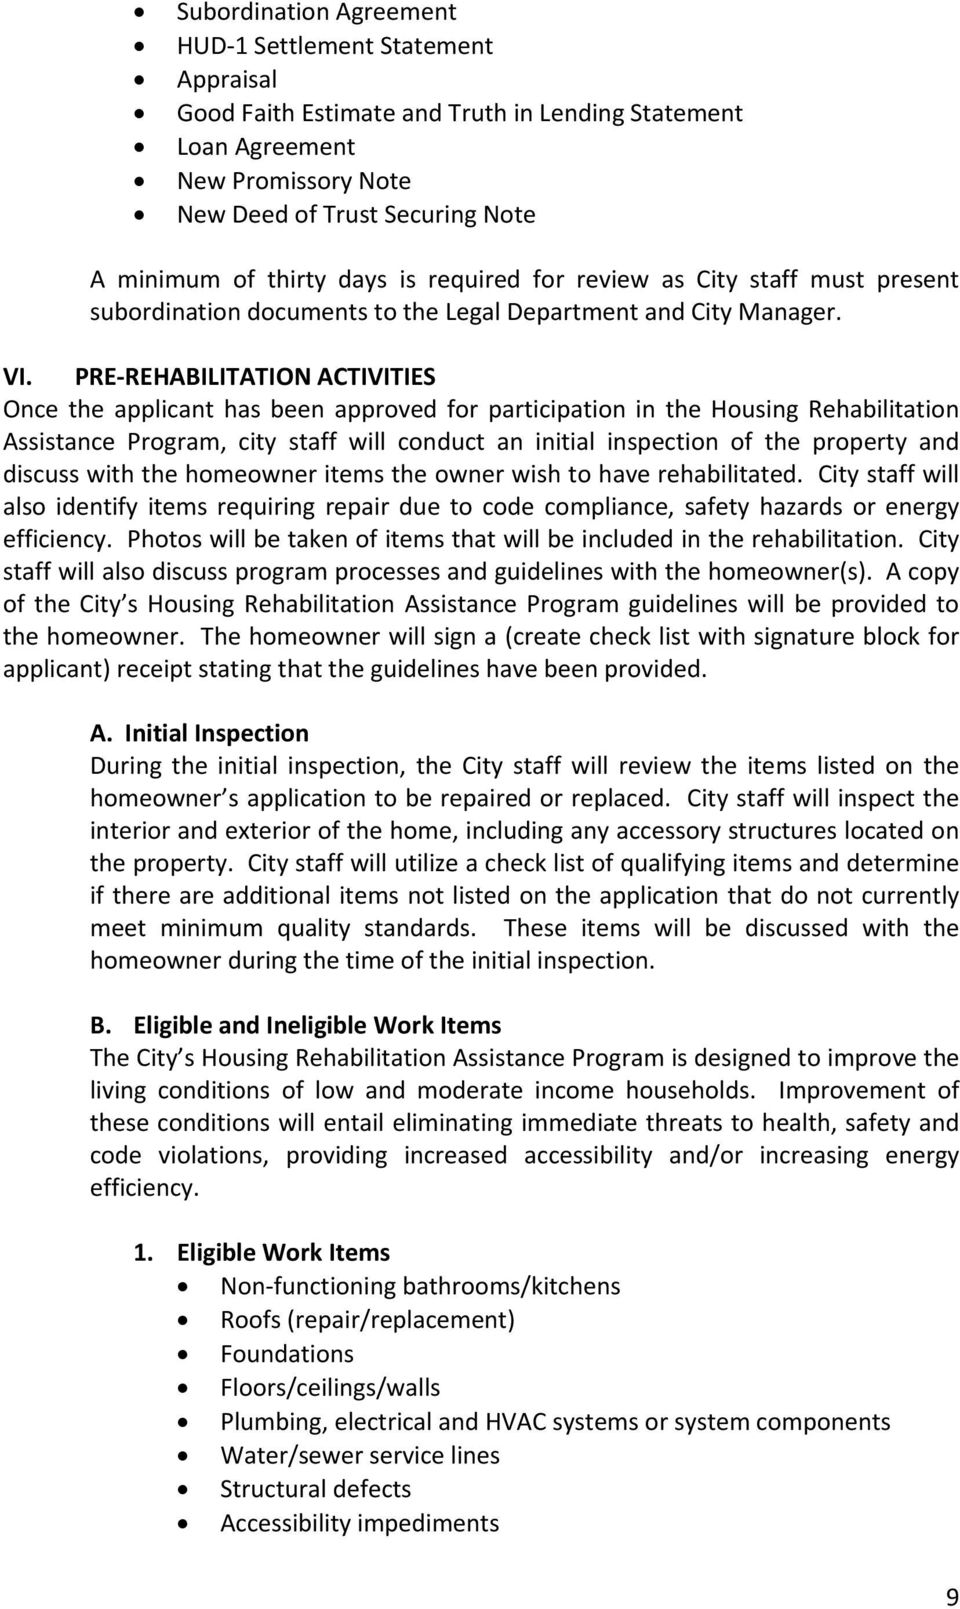 PRE REHABILITATION ACTIVITIES Once the applicant has been approved for participation in the Housing Rehabilitation Assistance Program, city staff will conduct an initial inspection of the property